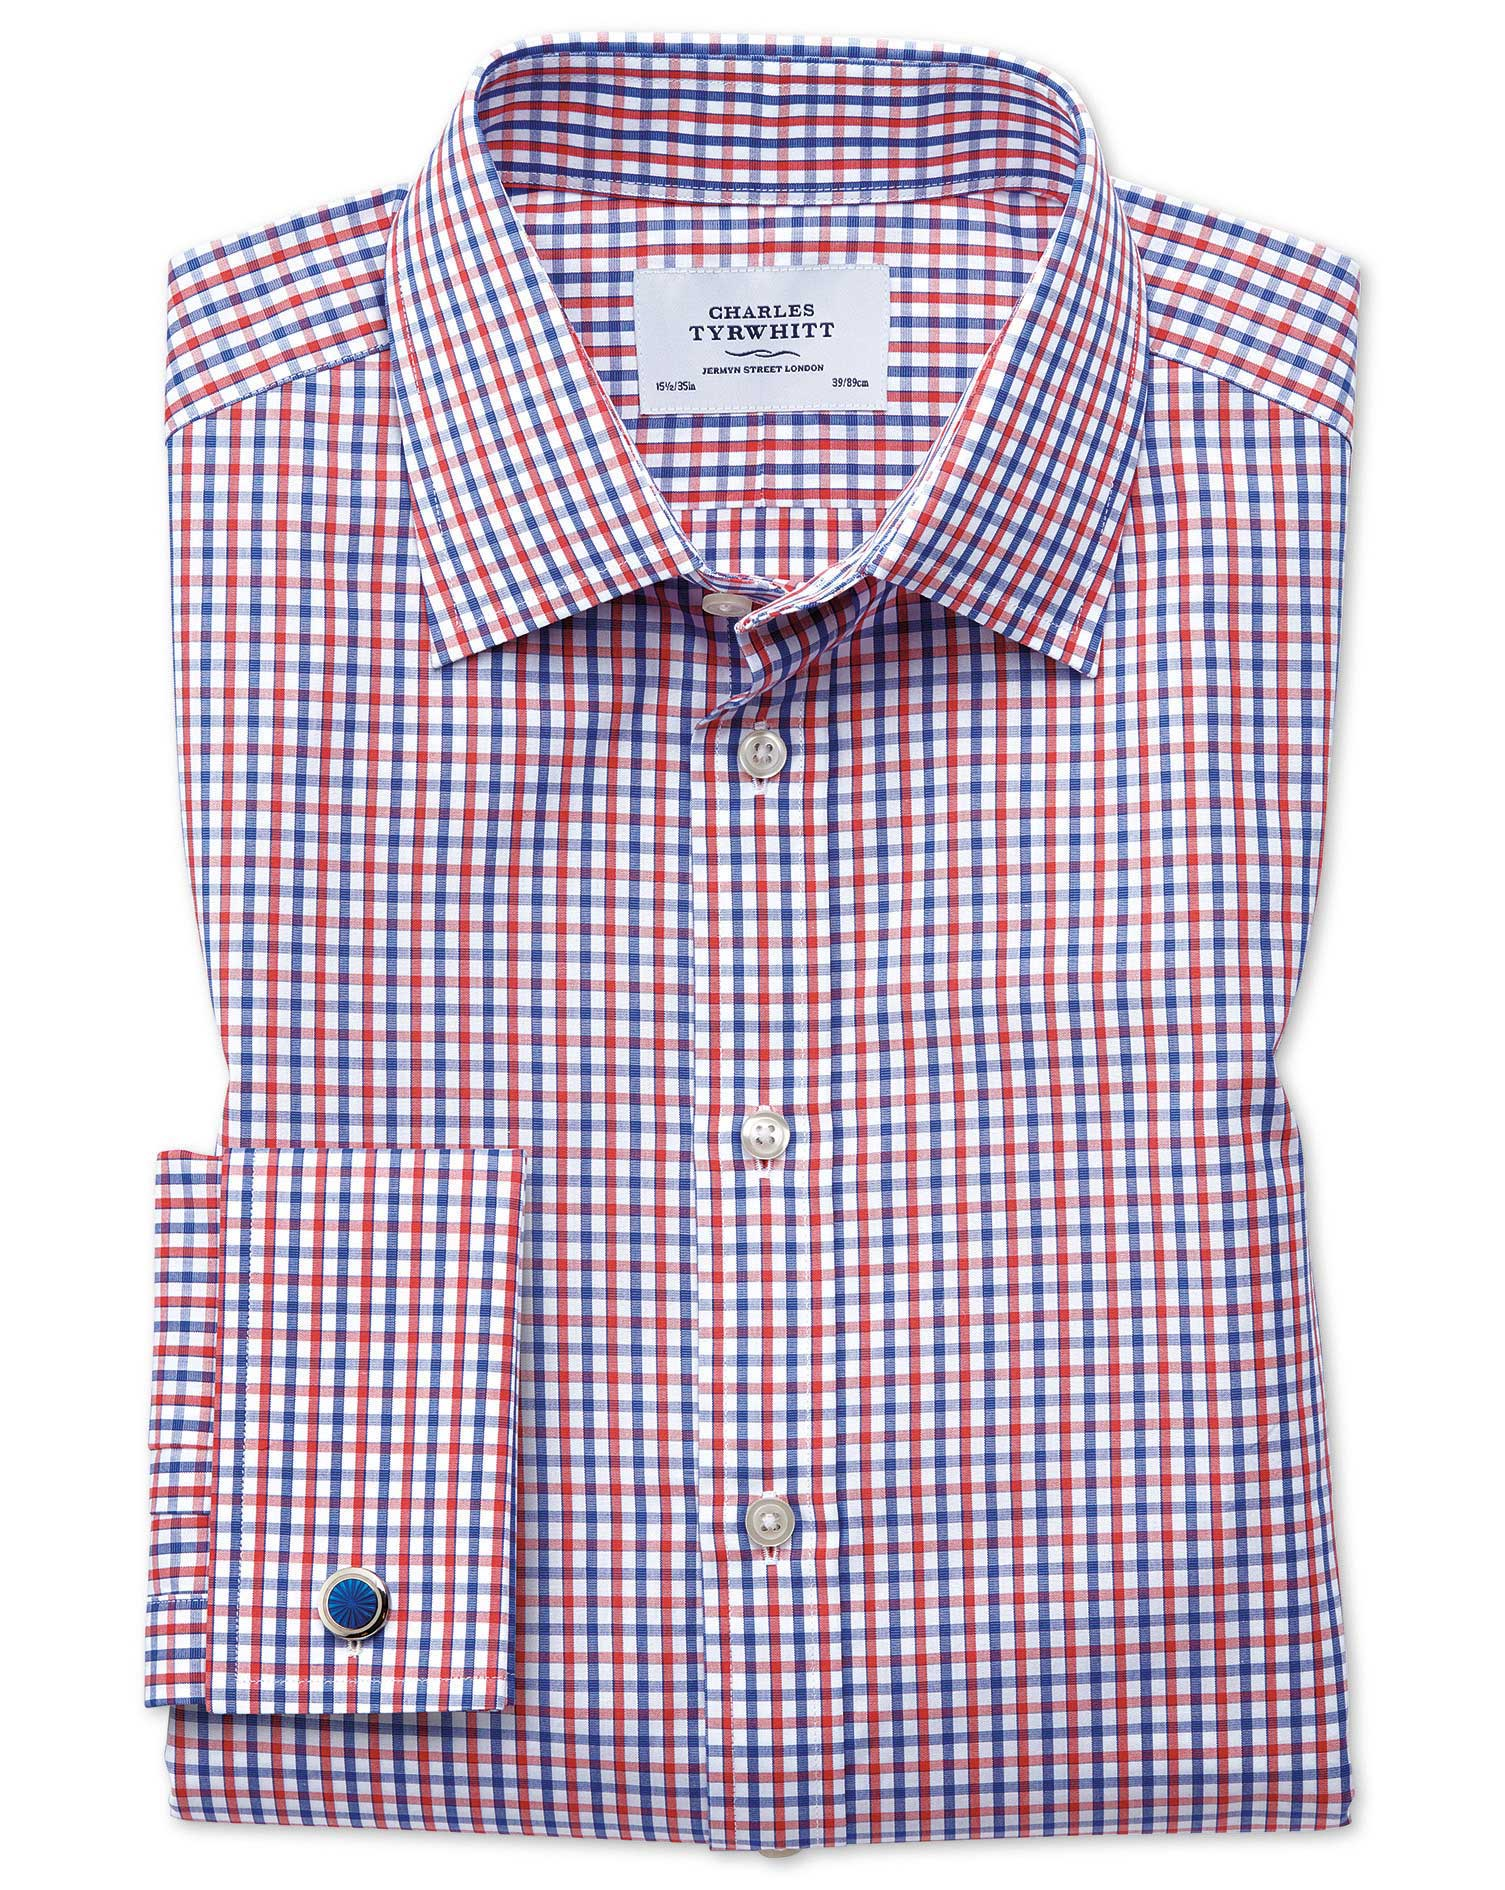 Slim Fit Two Colour Check Red and Blue Cotton Formal Shirt Single Cuff Size 16.5/34 by Charles Tyrwh